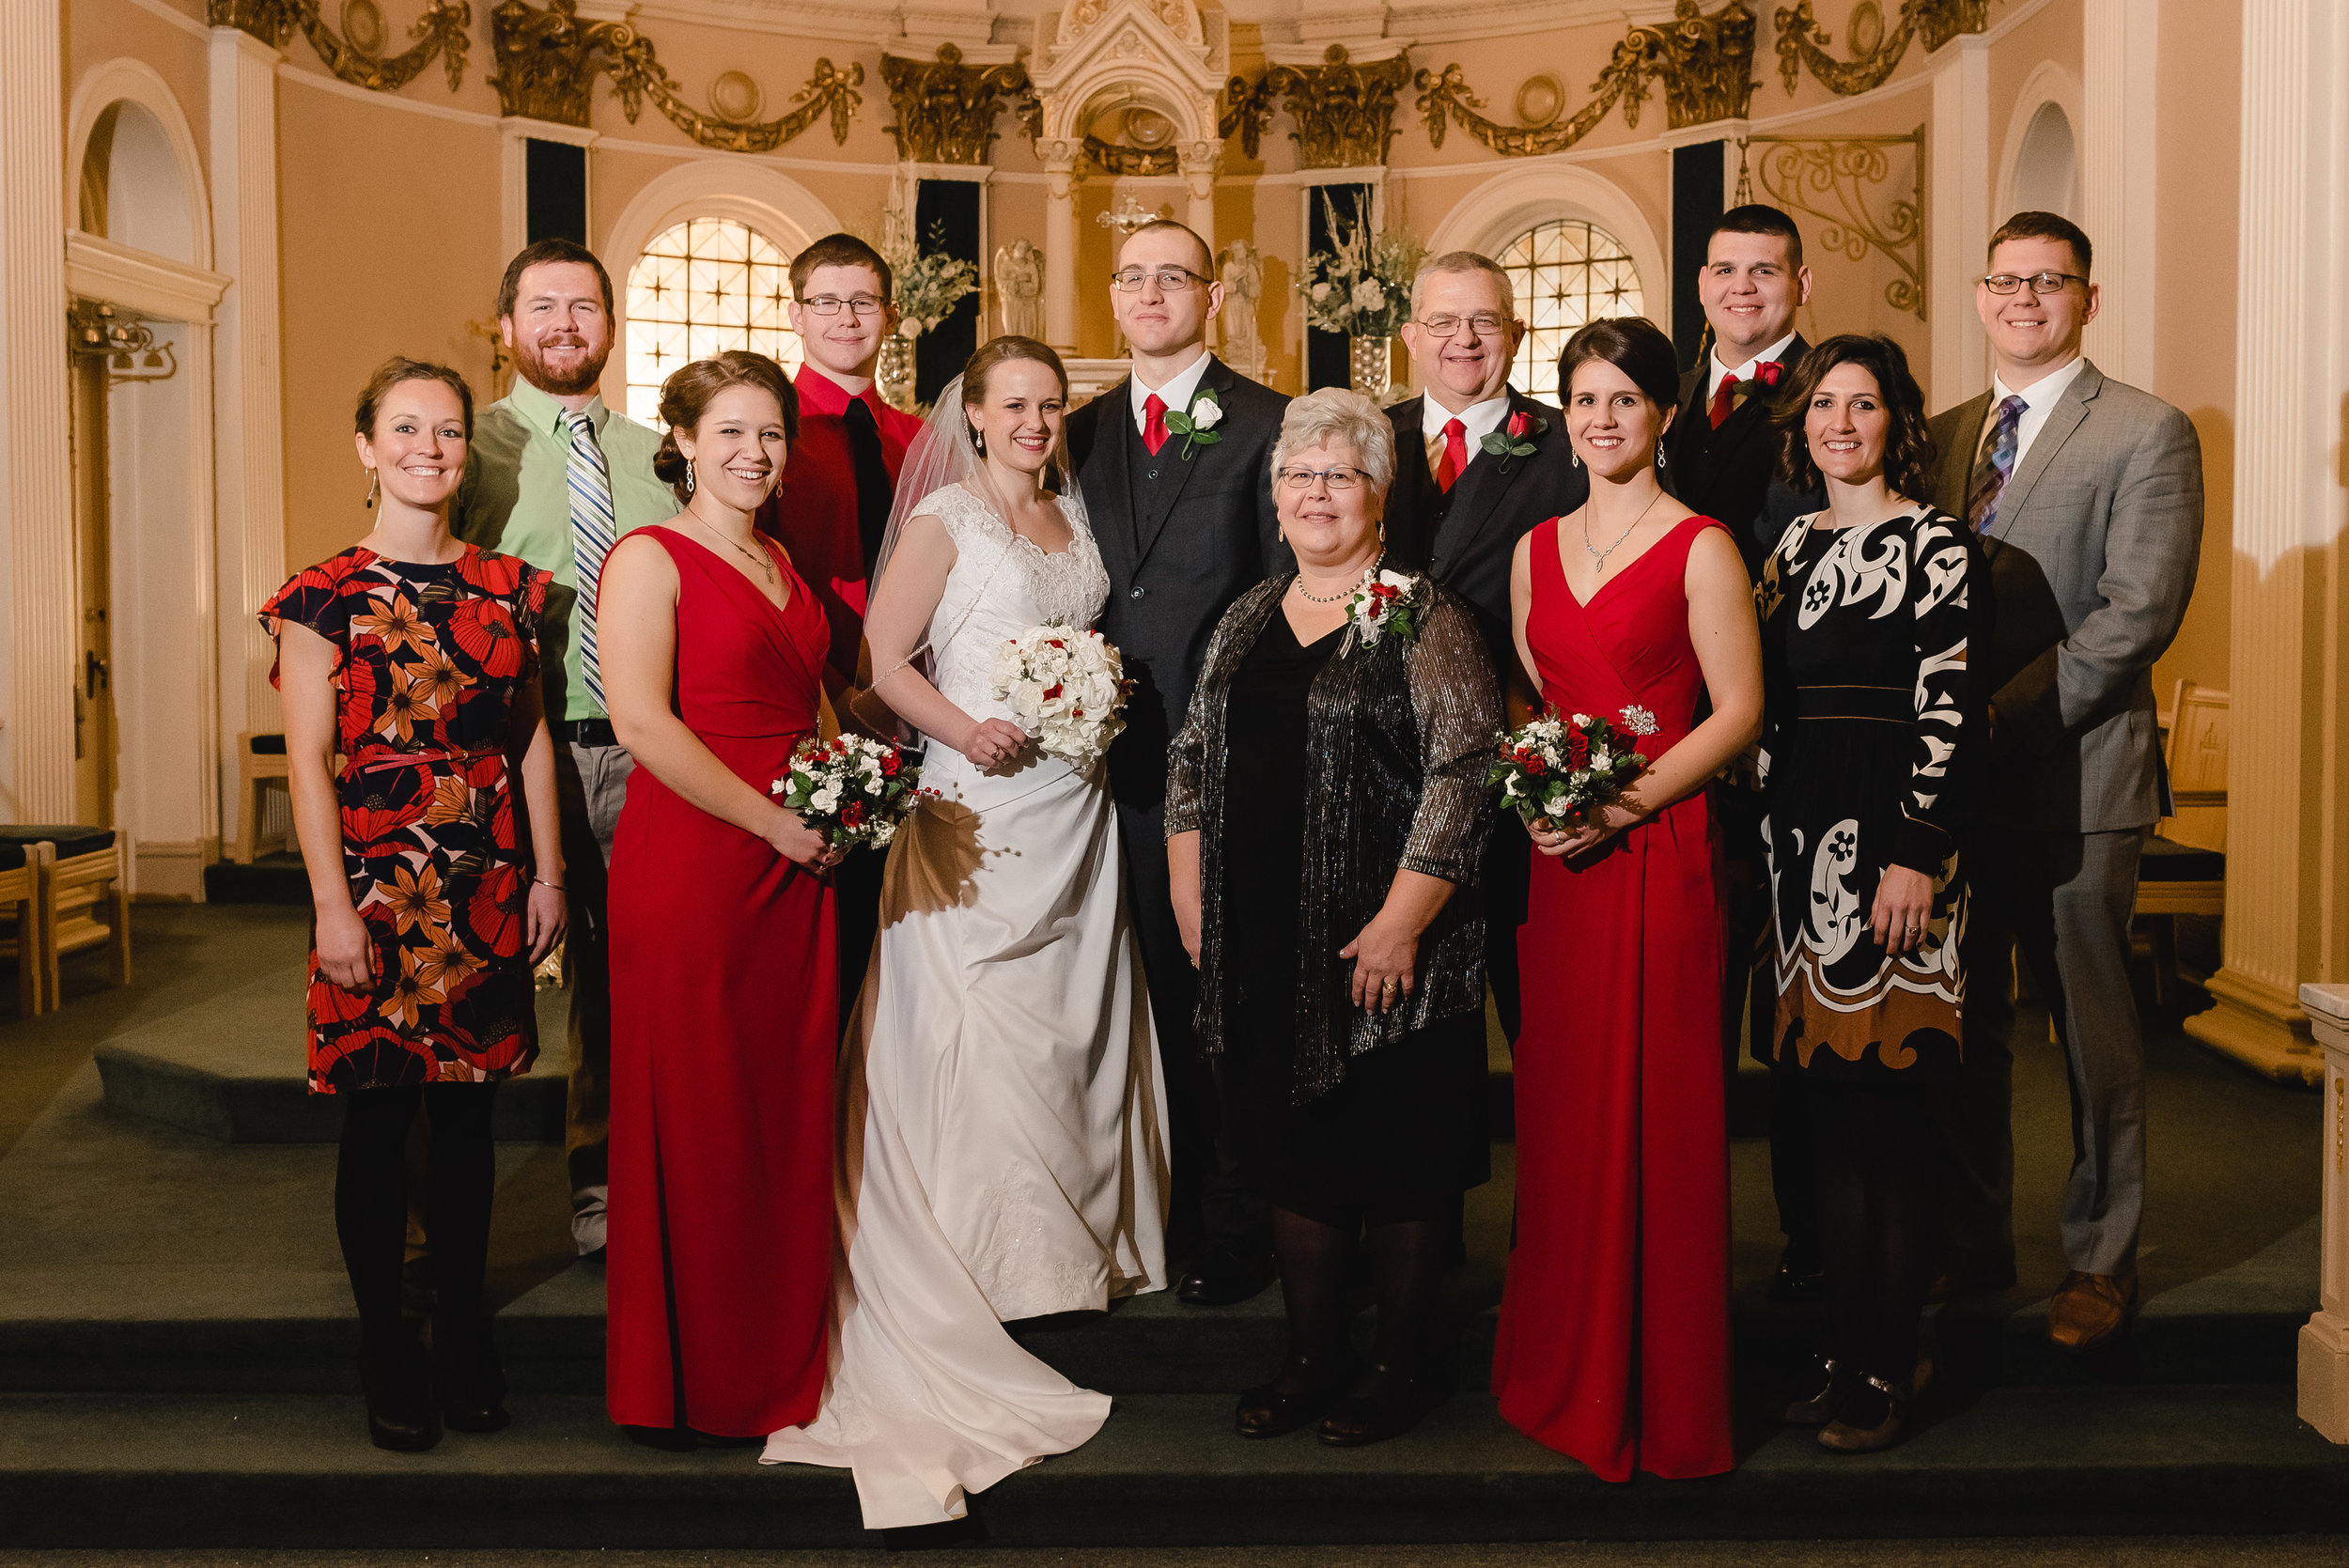 Classic Family Formal Wedding Portrait - Delano, MN Wedding Photographer